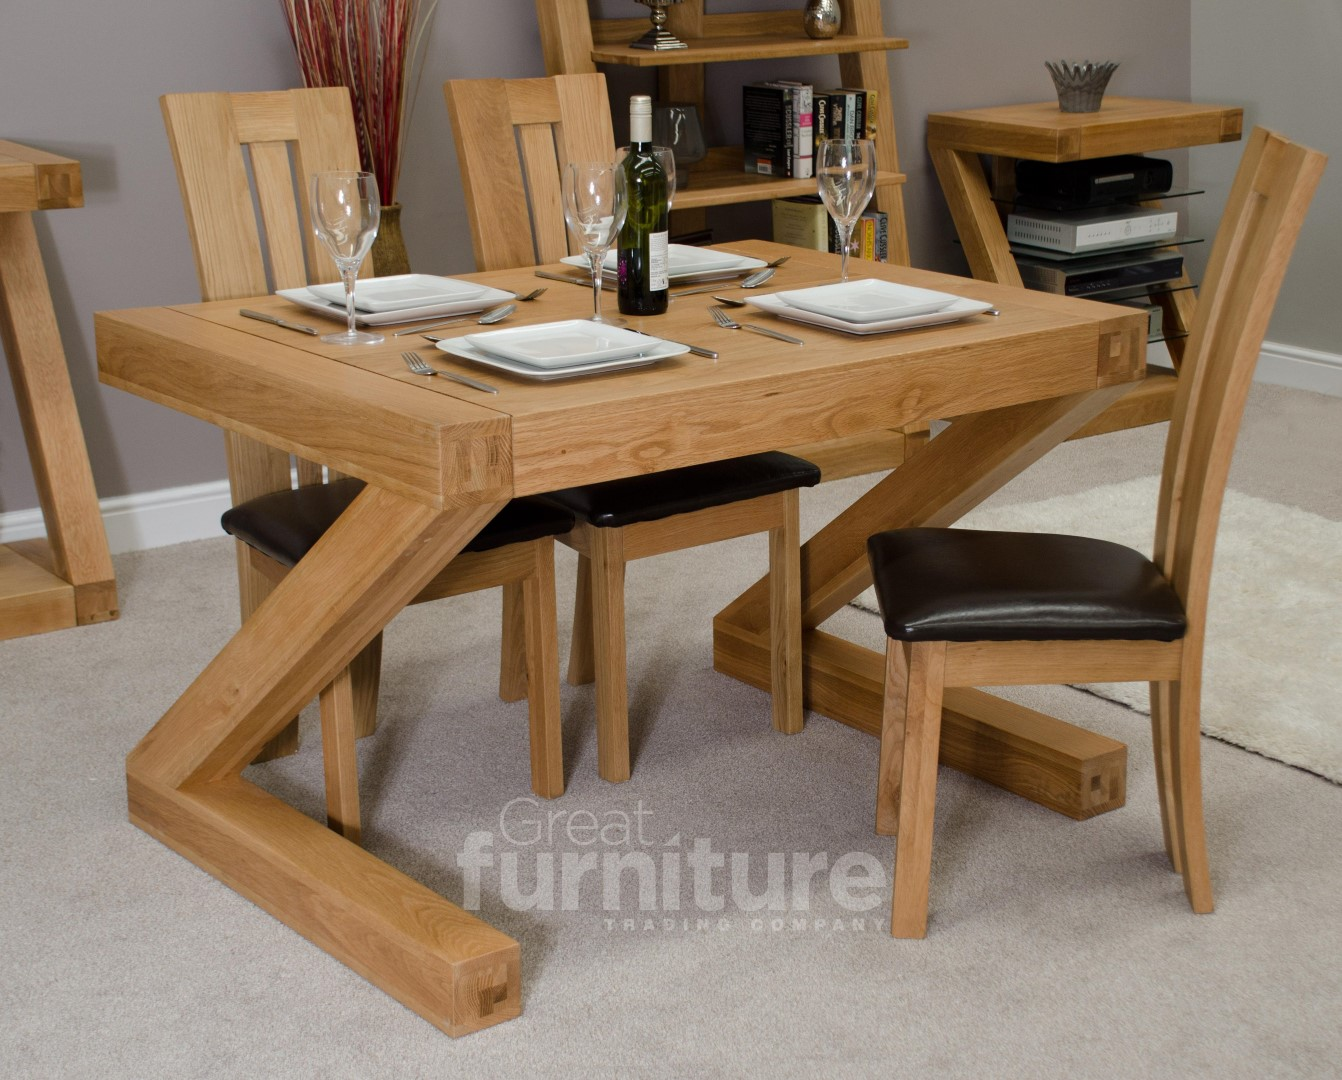 Wooden dining chairs with cushion - Z Solid Oak 120cm Dining Table Cushion Dining Room Furniture